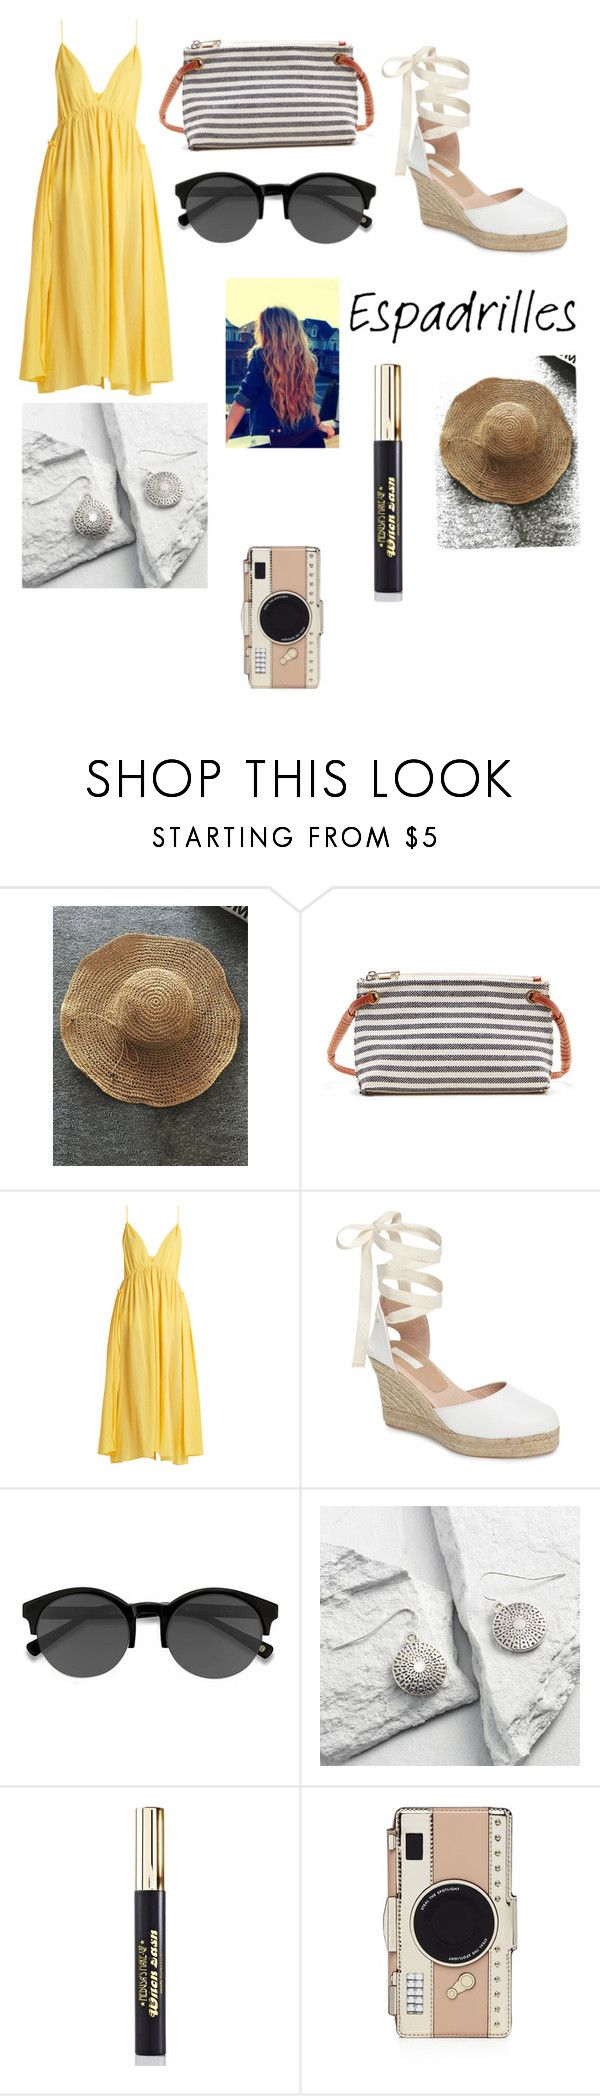 """""""Espadrilles Summer Contest"""" by alinagomez1221 ❤ liked on Polyvore featuring Sole Society, Loup Charmant, Topshop, EyeBuyDirect.com, Cost Plus World Market, Medusa's Makeup and Kate Spade"""